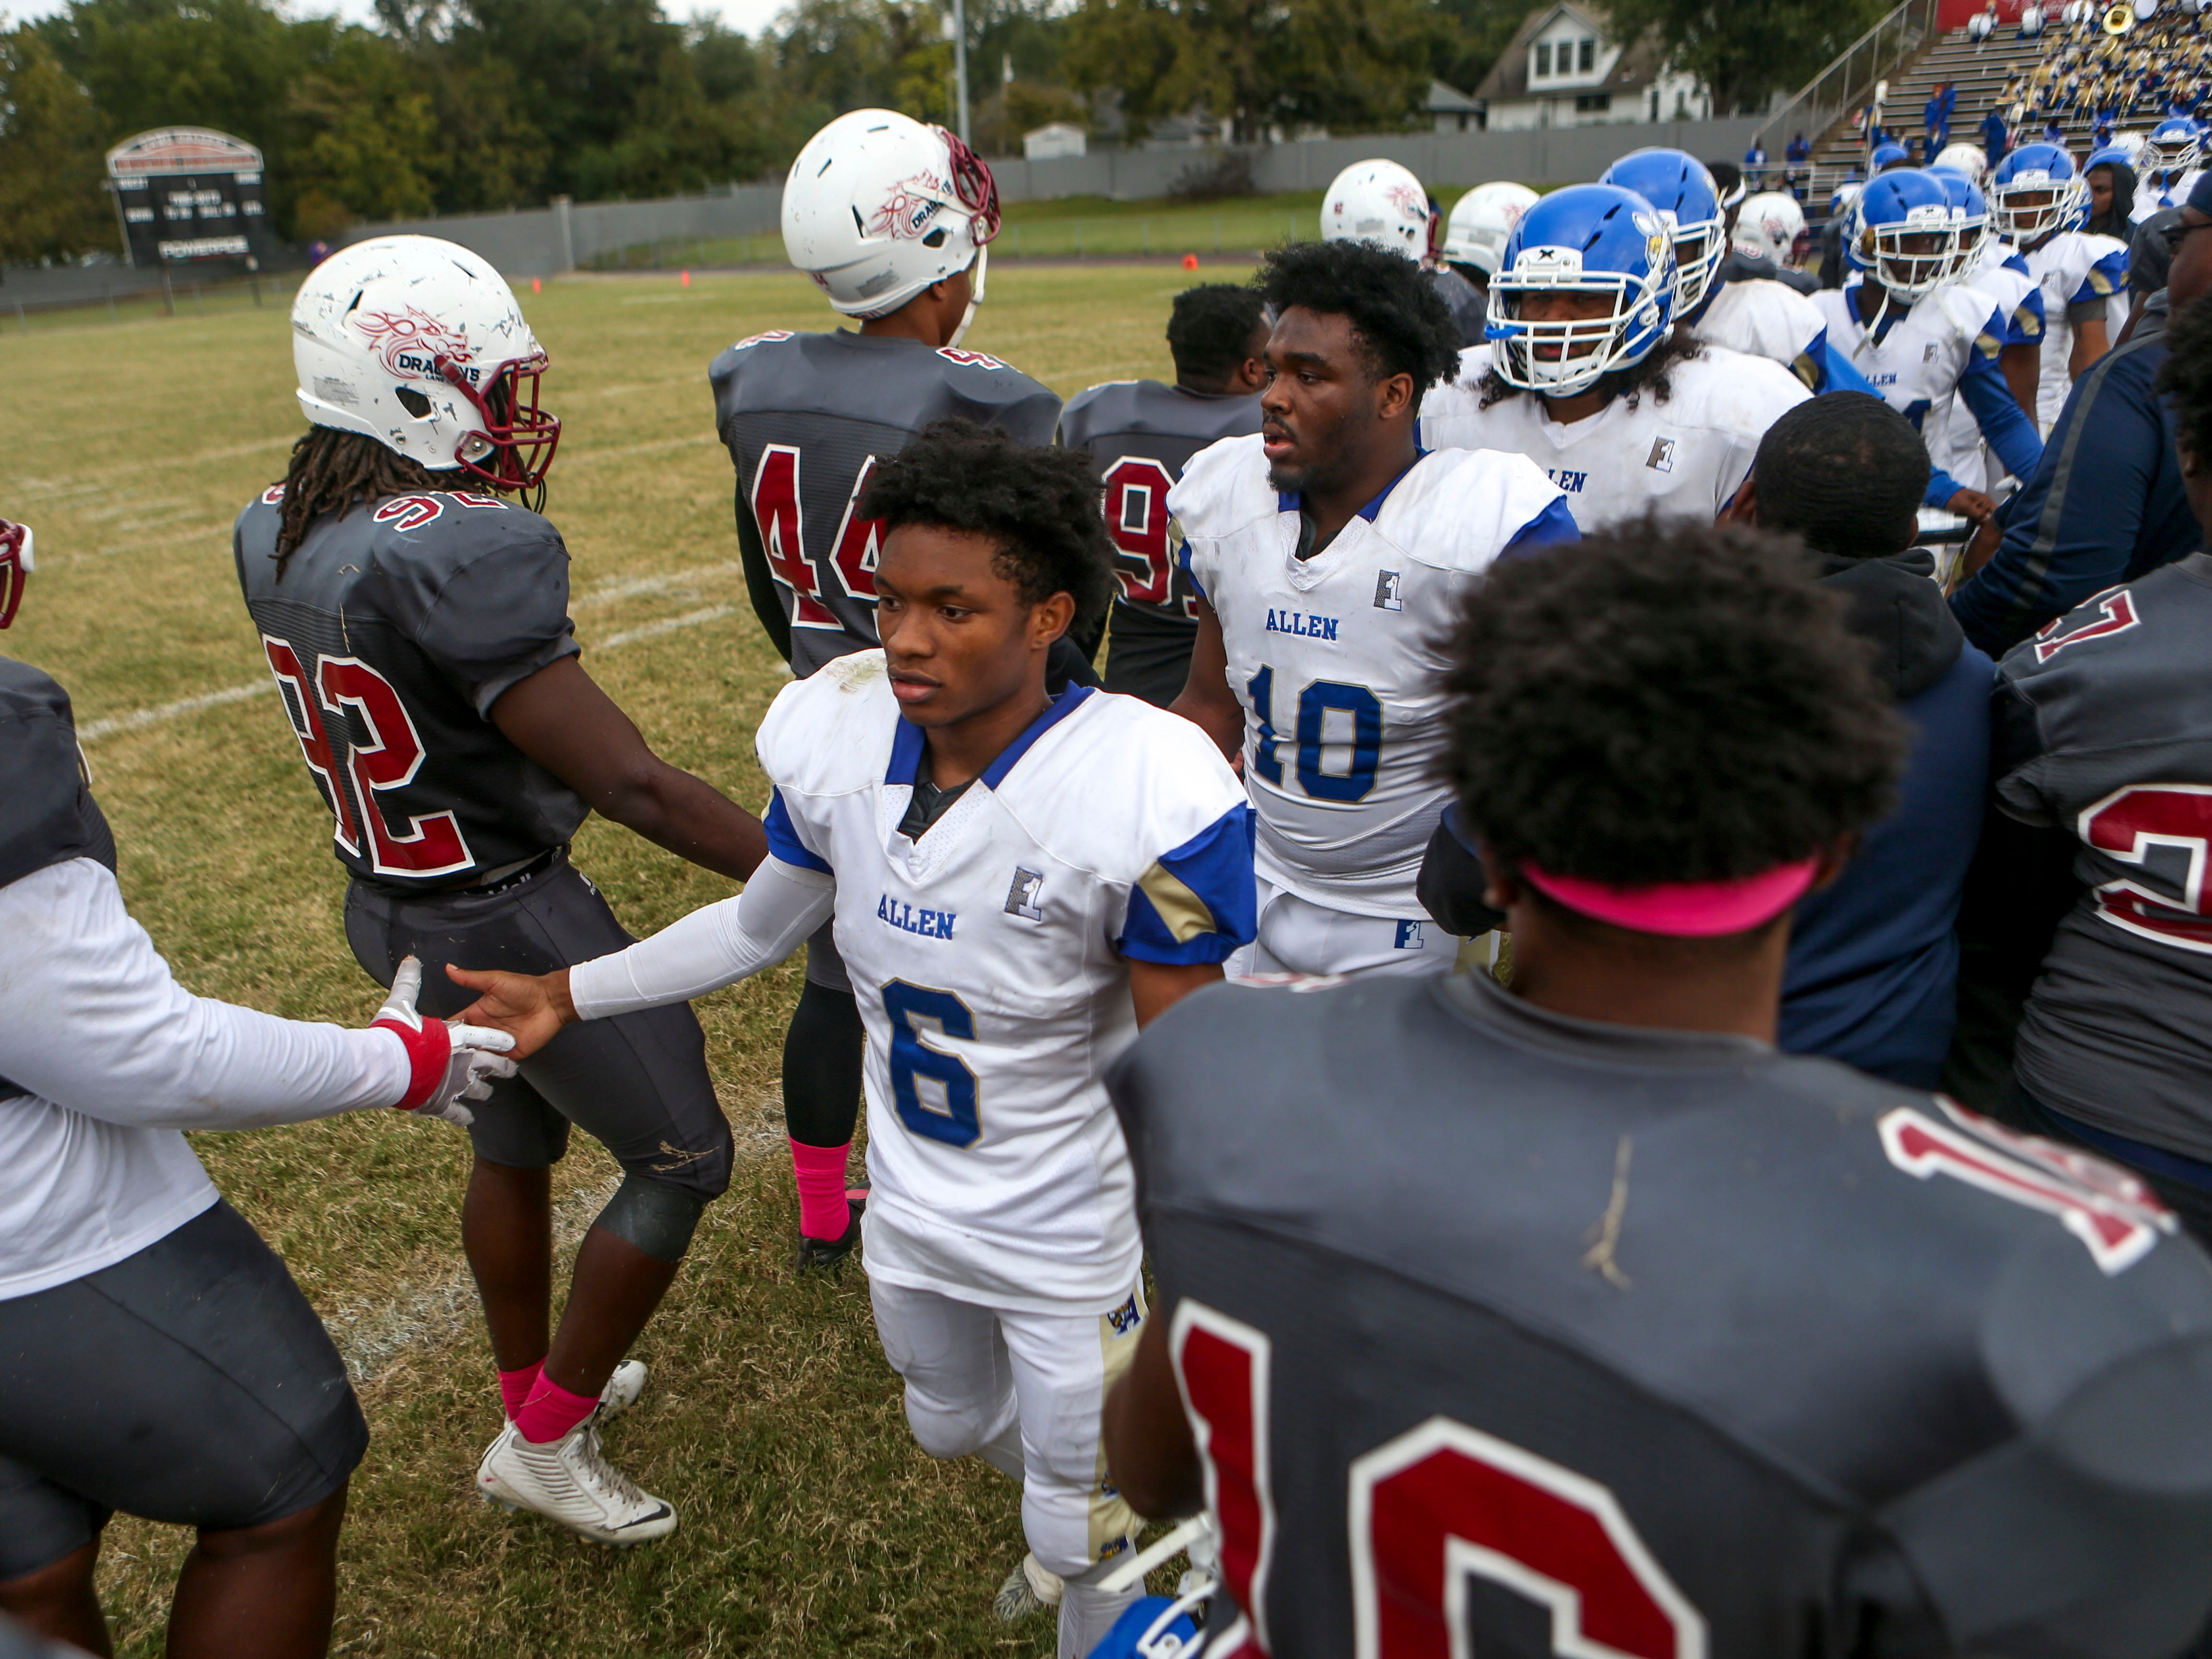 Lane College and Allen University players shake hands after the Lane homecoming game where Lane won 13-3 at T.R. White Sportsplex in Jackson, Tenn., on Saturday, Oct. 13, 2018.